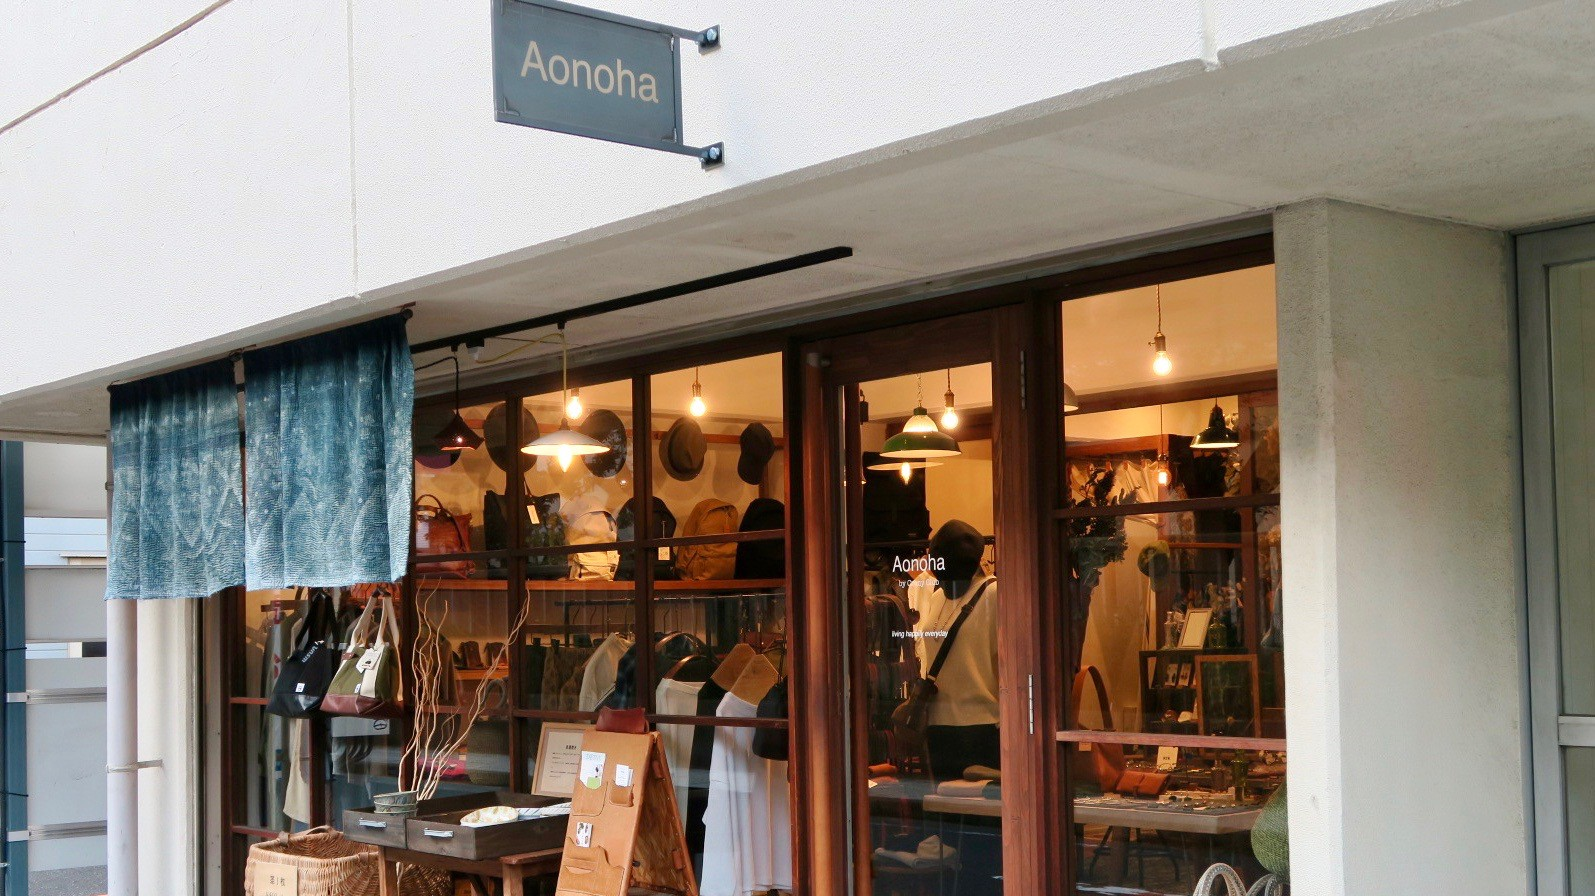 Lifestyle & Gift Items.『Aonoha』実店舗 info.